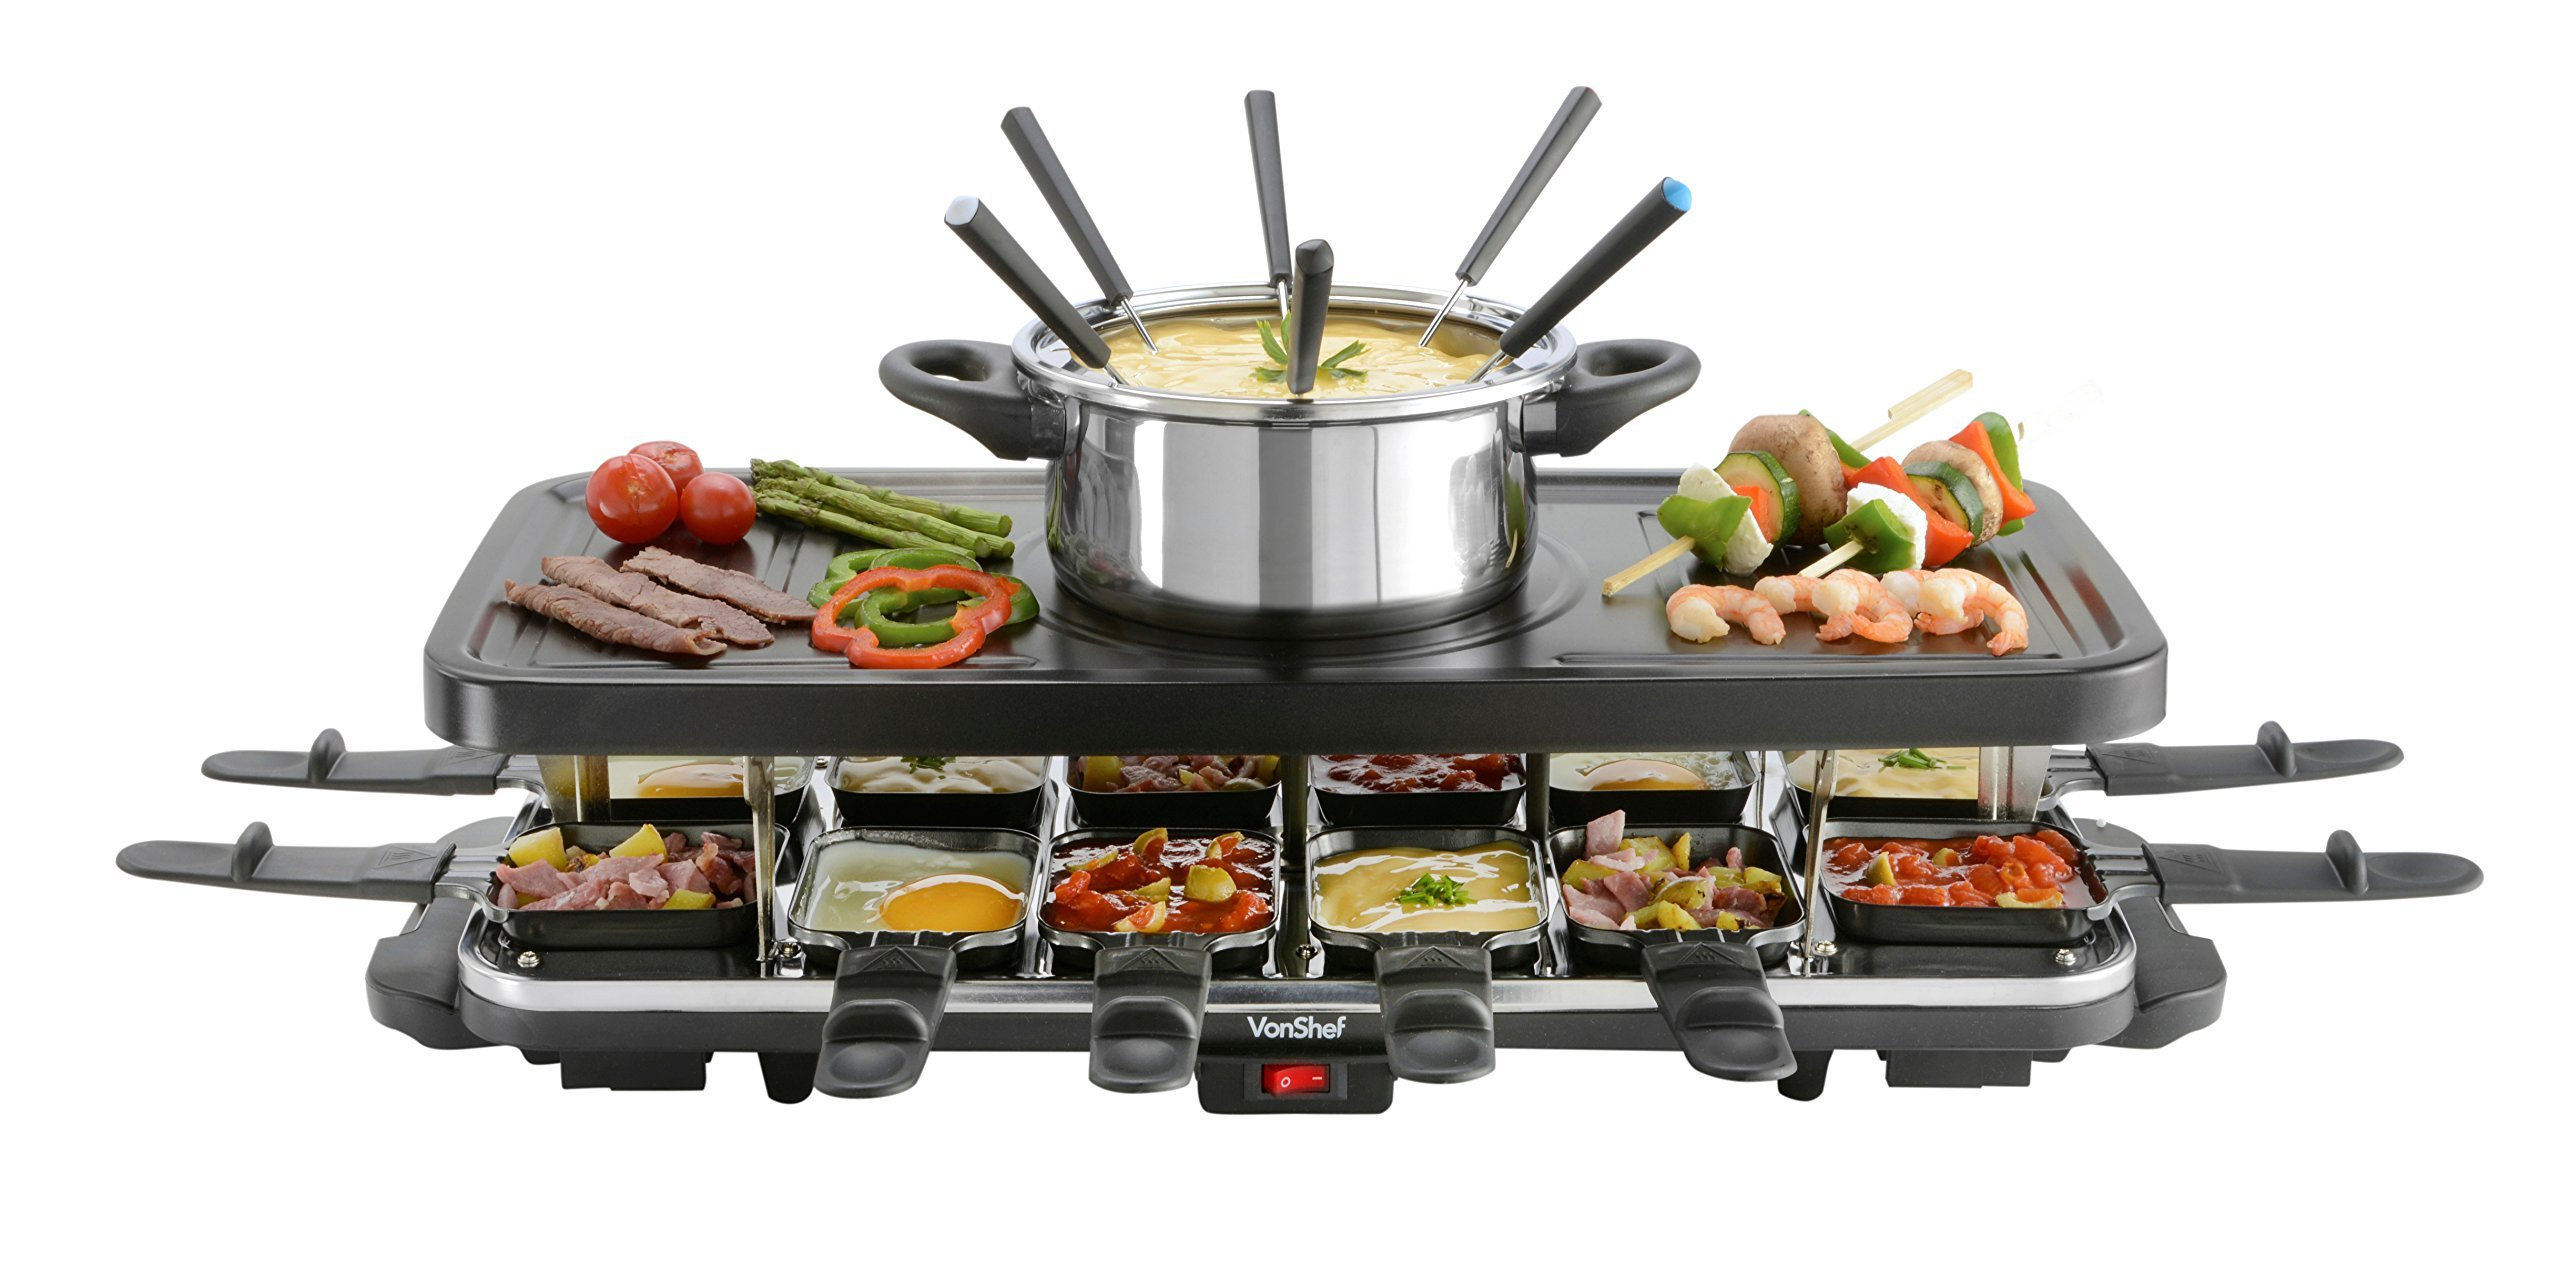 VonShef Raclette Party Grill with 6 Fork Fondue Set and 12 Raclette Pans